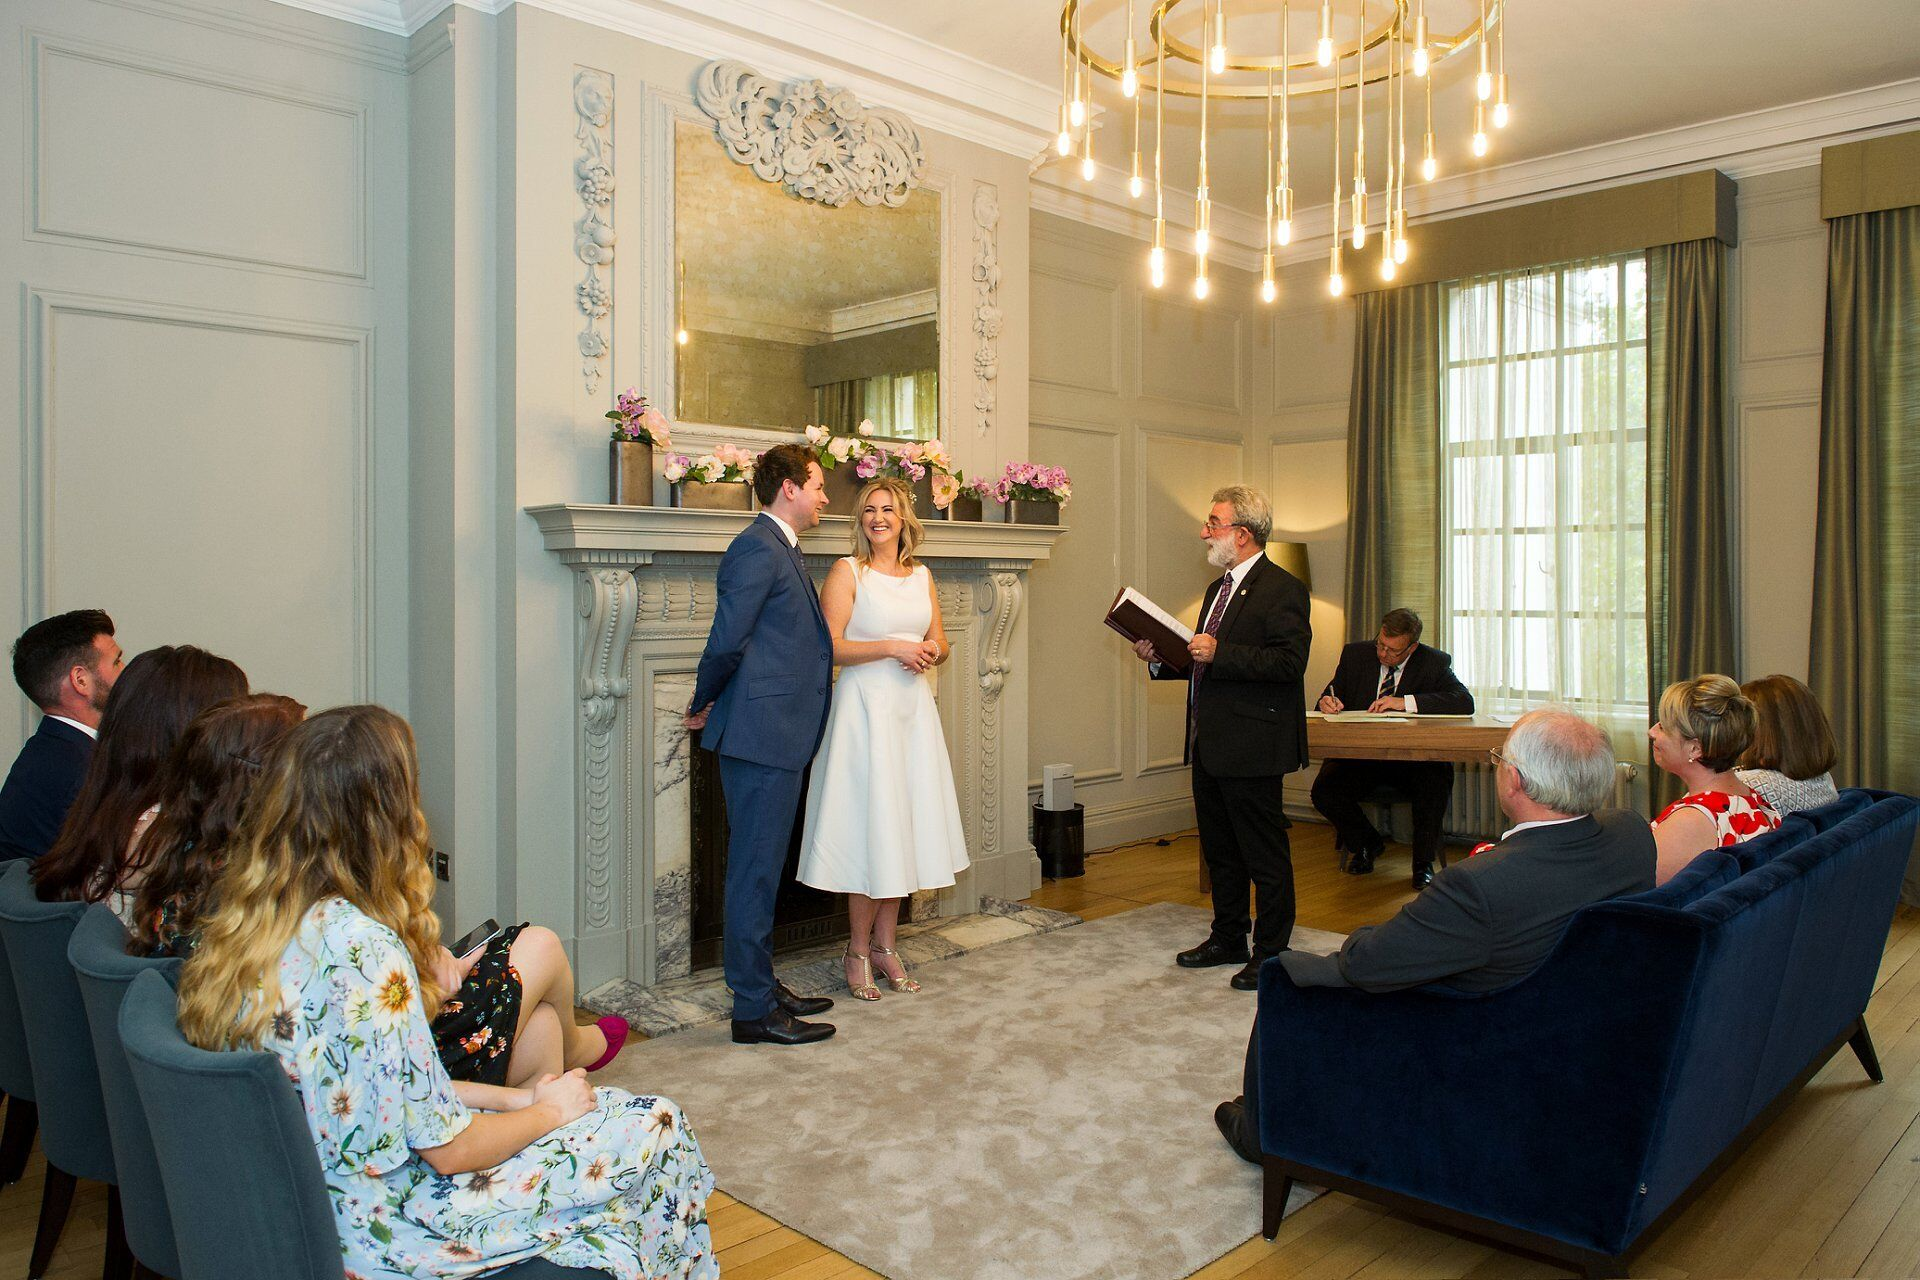 soho room wedding photography and a ceremony in progress at old marylebone town hall wedding photography by emma duggan